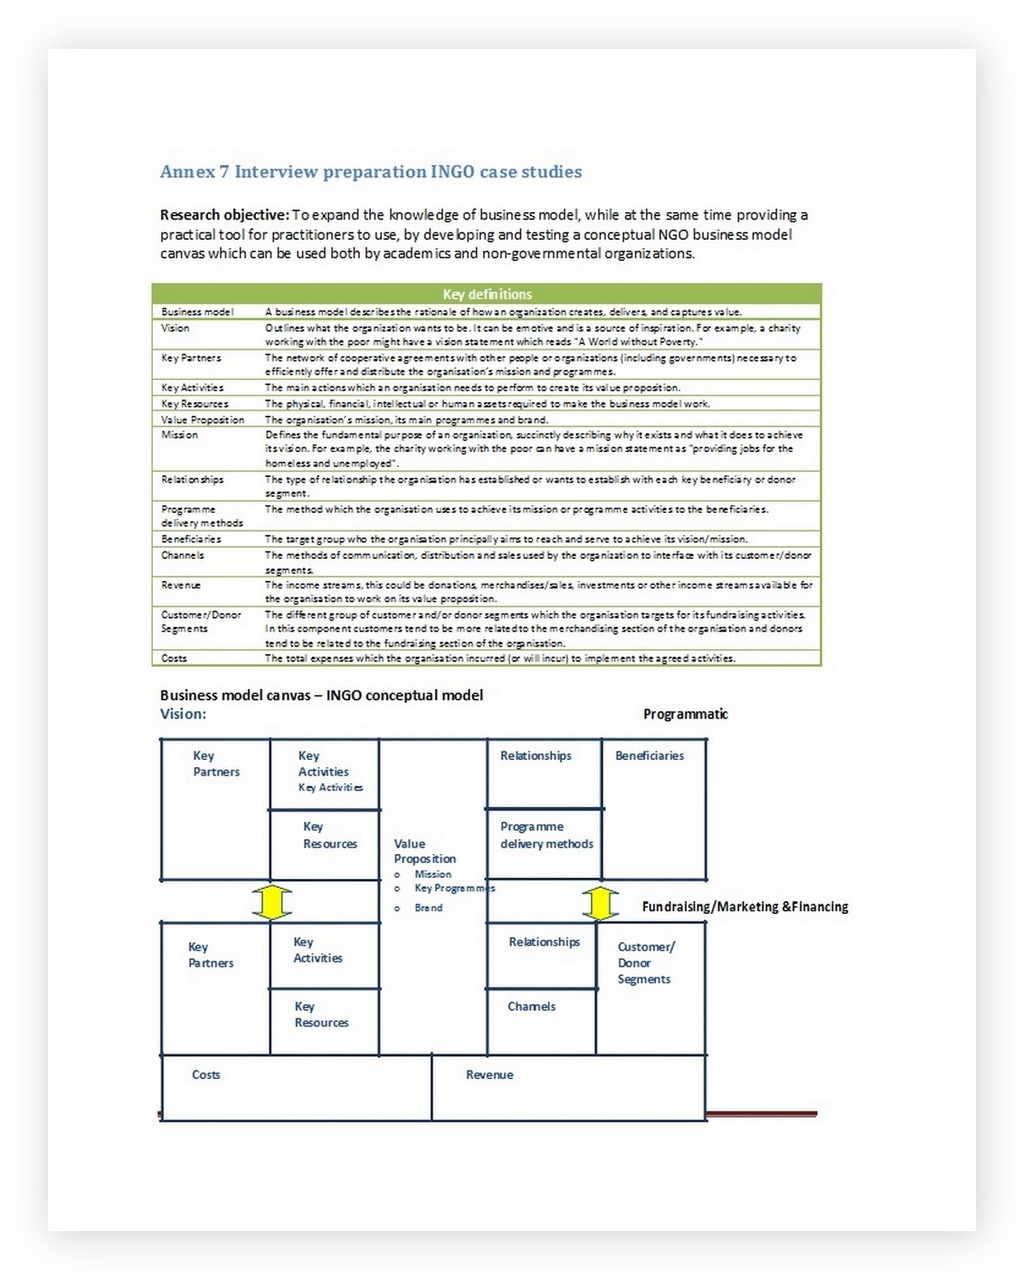 Business Model Canvas Template Word : business, model, canvas, template, Business, Model, Canvas, Template, Hennessy, Events